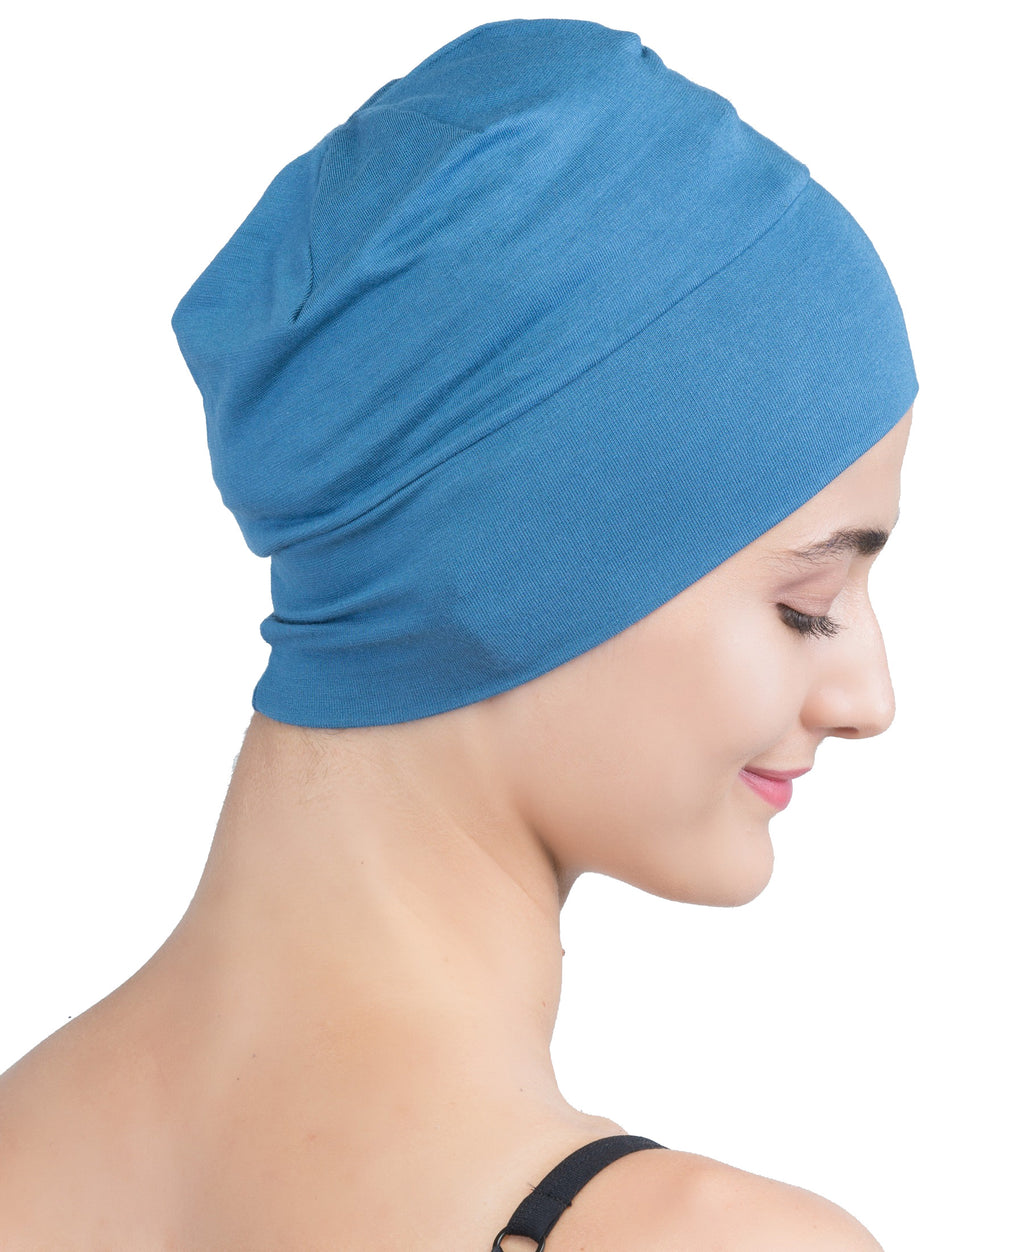 Wrap-fit Sleep Cap - Caroline Blue